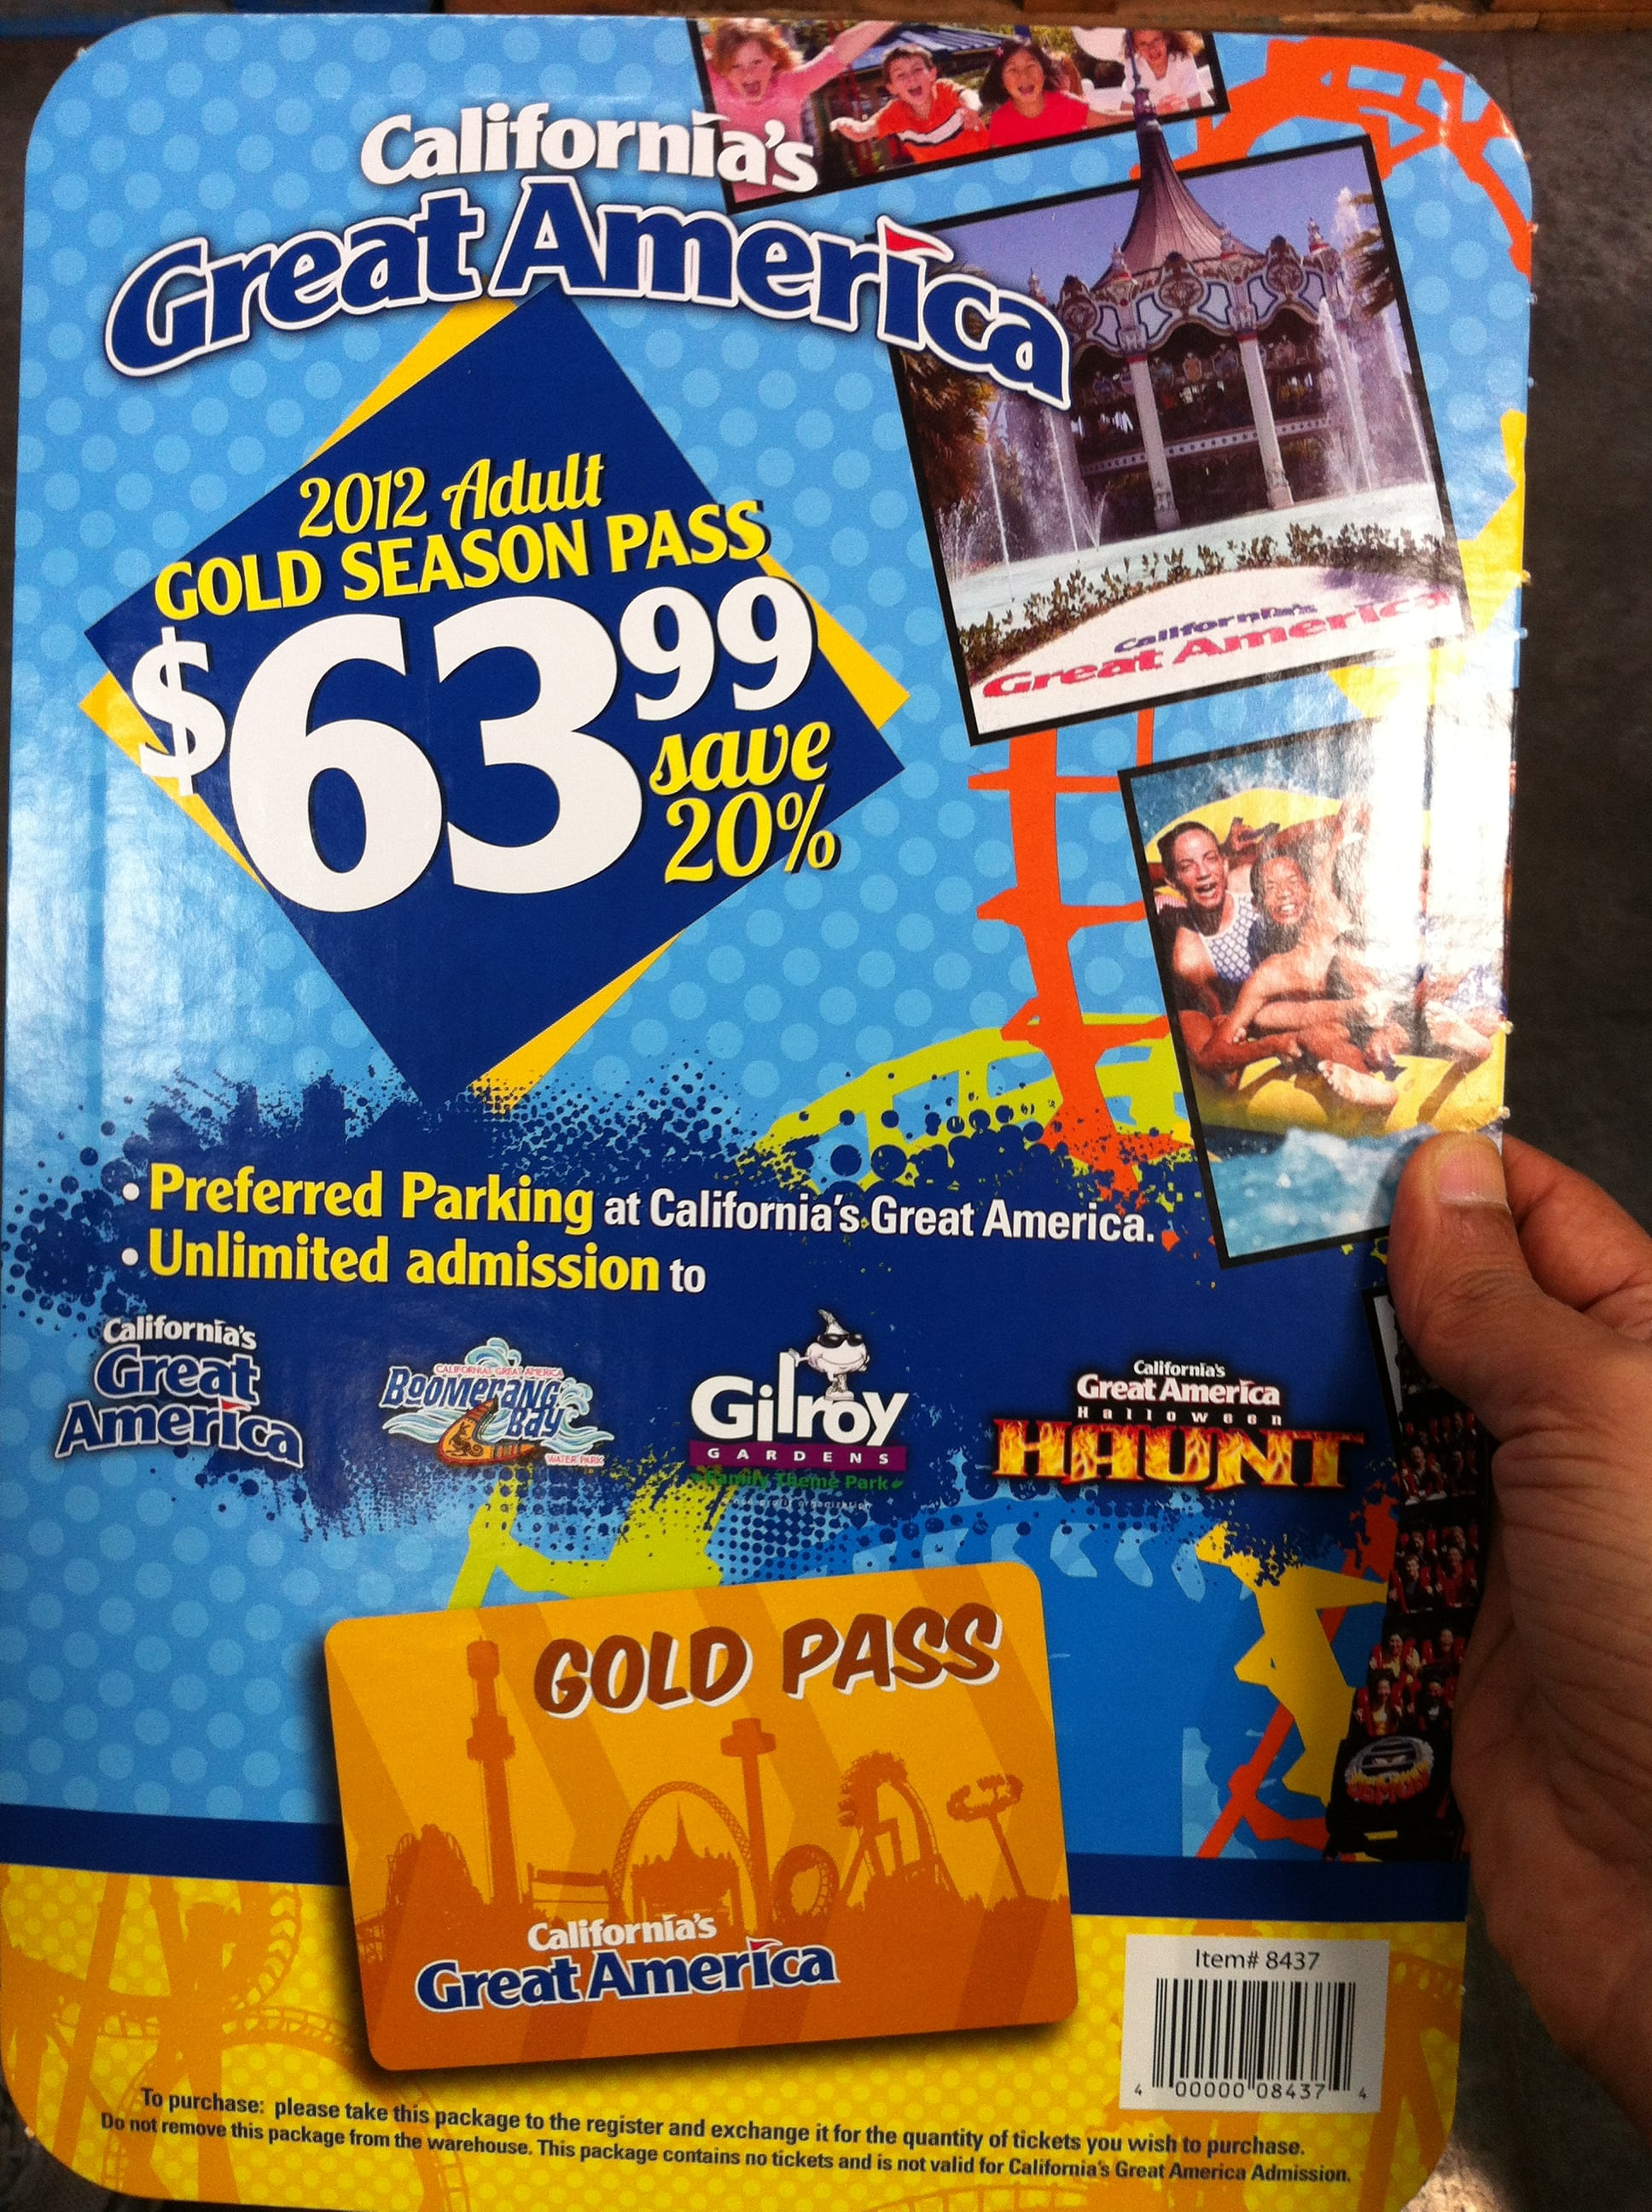 costco - california great america adult gold season pass $64